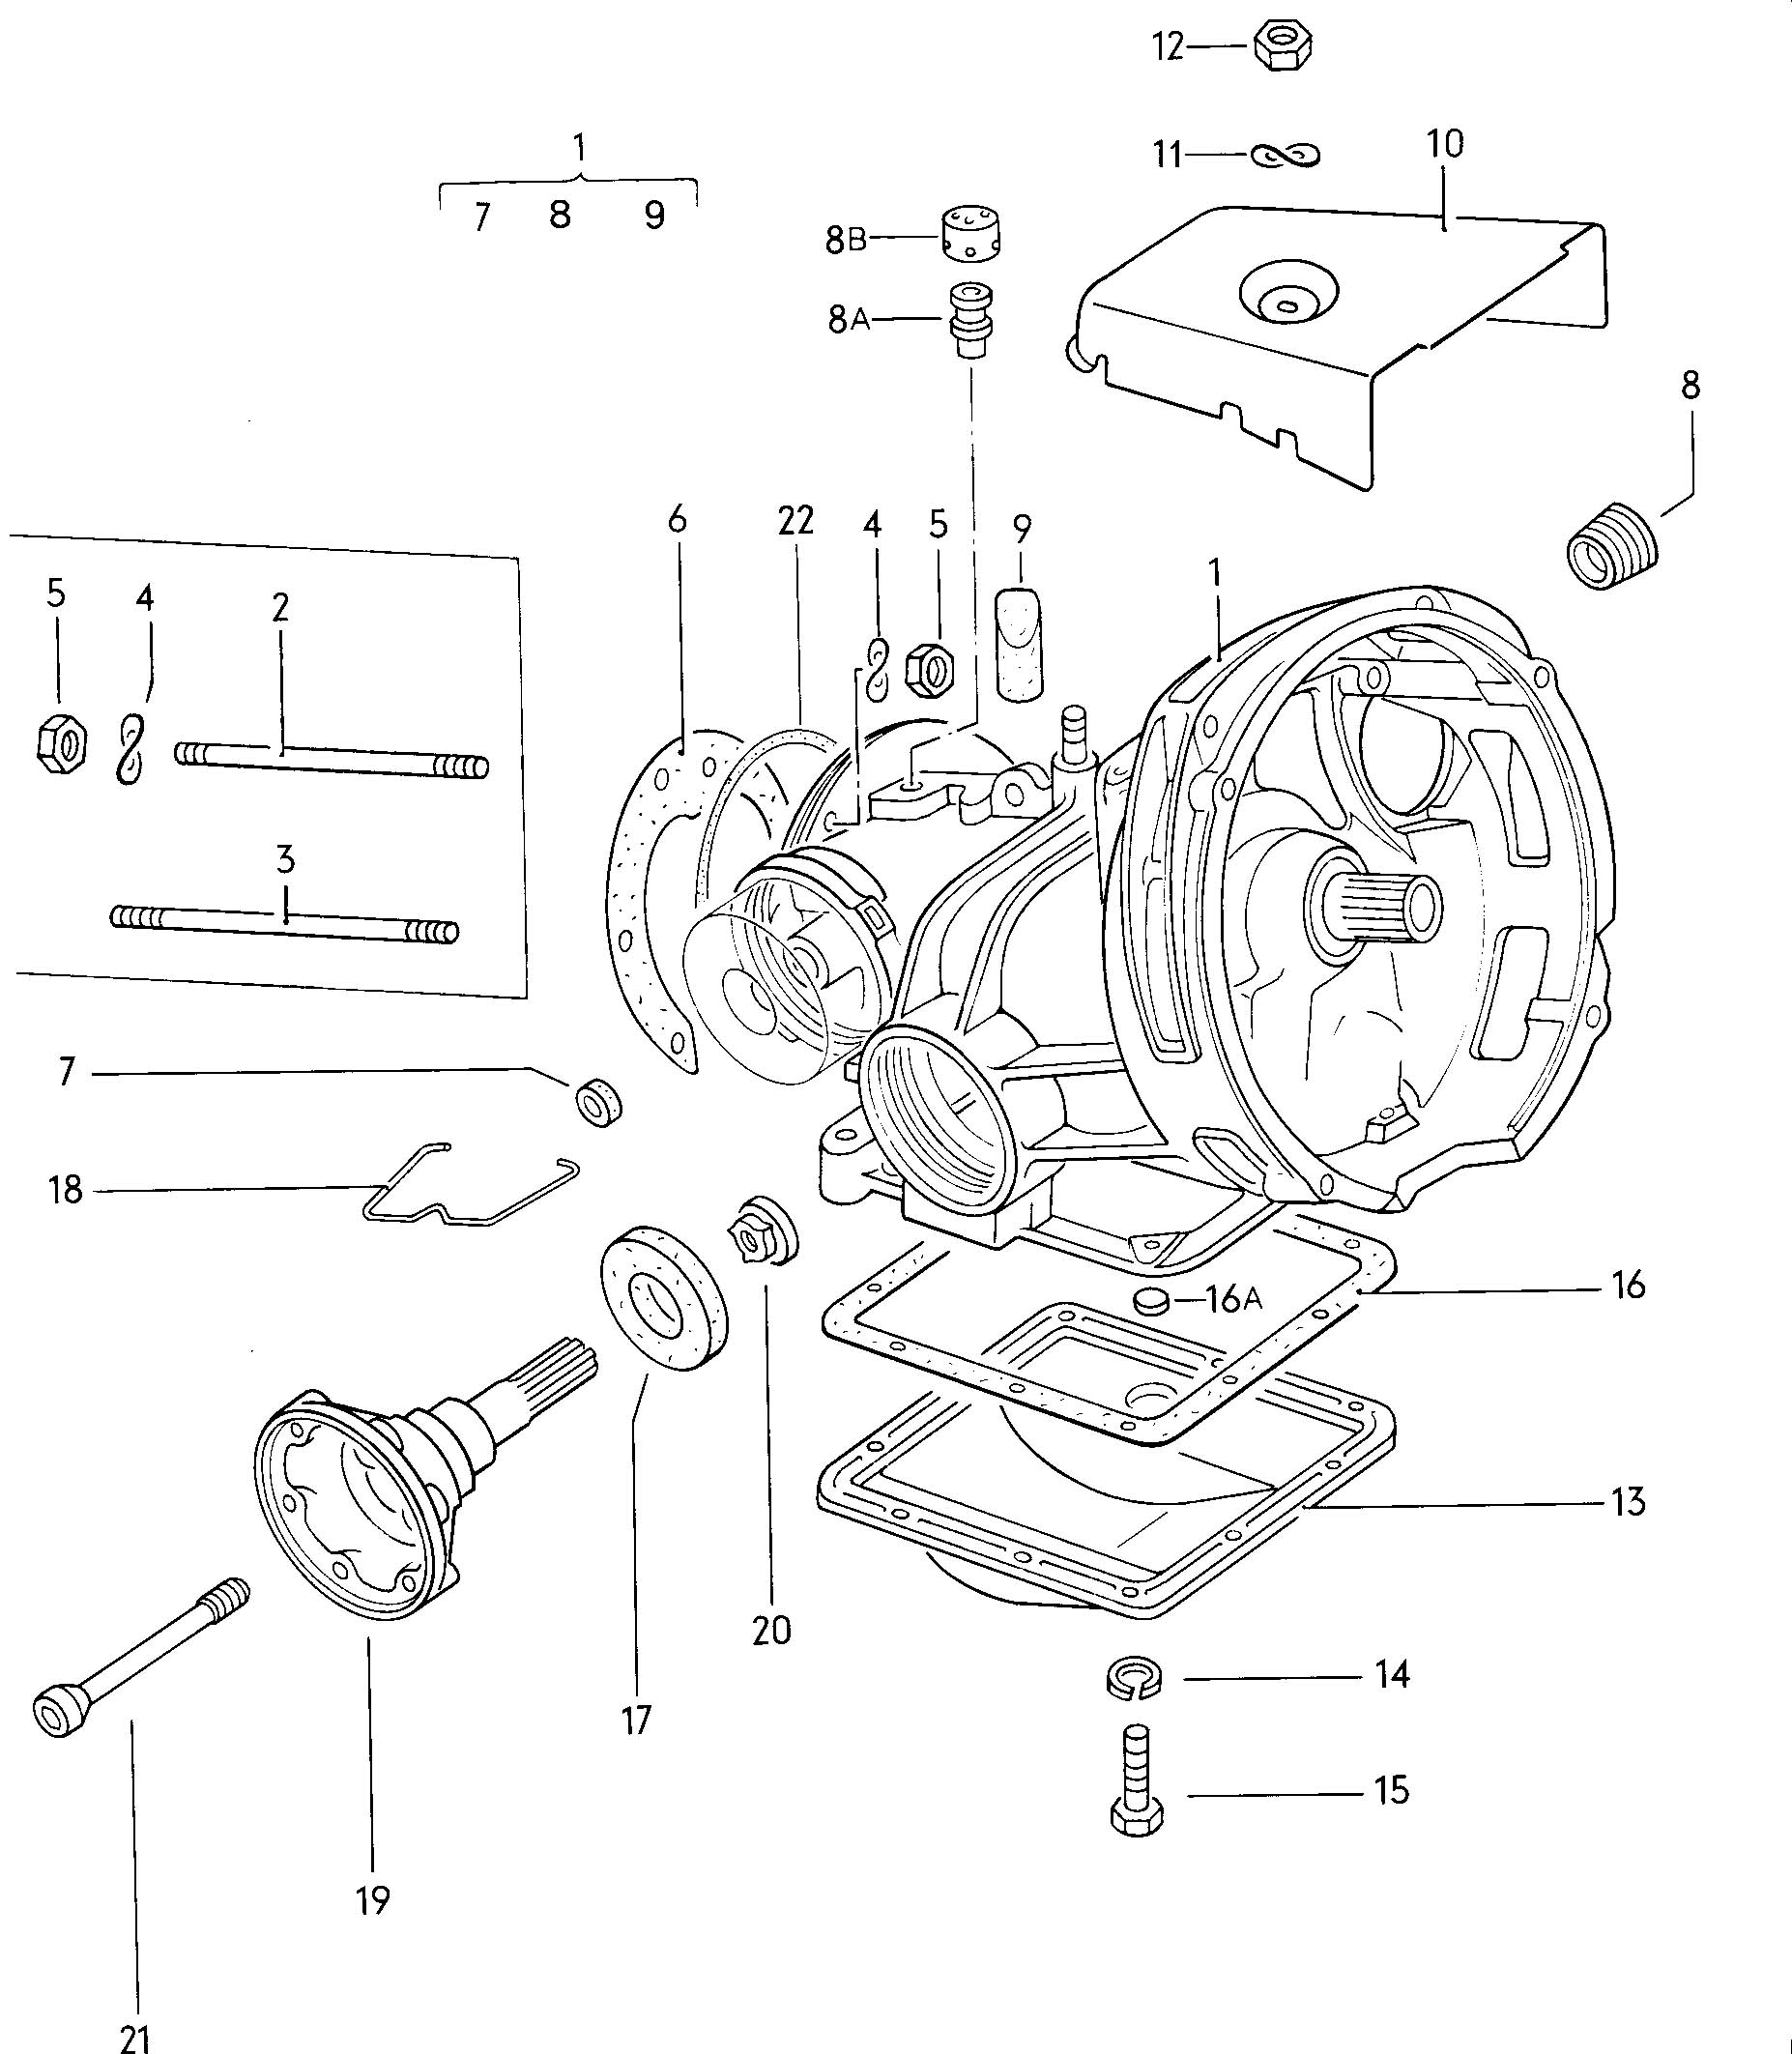 Tiguan Suspension Diagram in addition 1958 Chevrolet Steering Column Wiring Diagram as well Ford External Voltage Regulator Wiring Diagram moreover Vw 1600 Firing Order Diagram besides Ignition switch replacement. on 1970 vw beetle wiring diagram